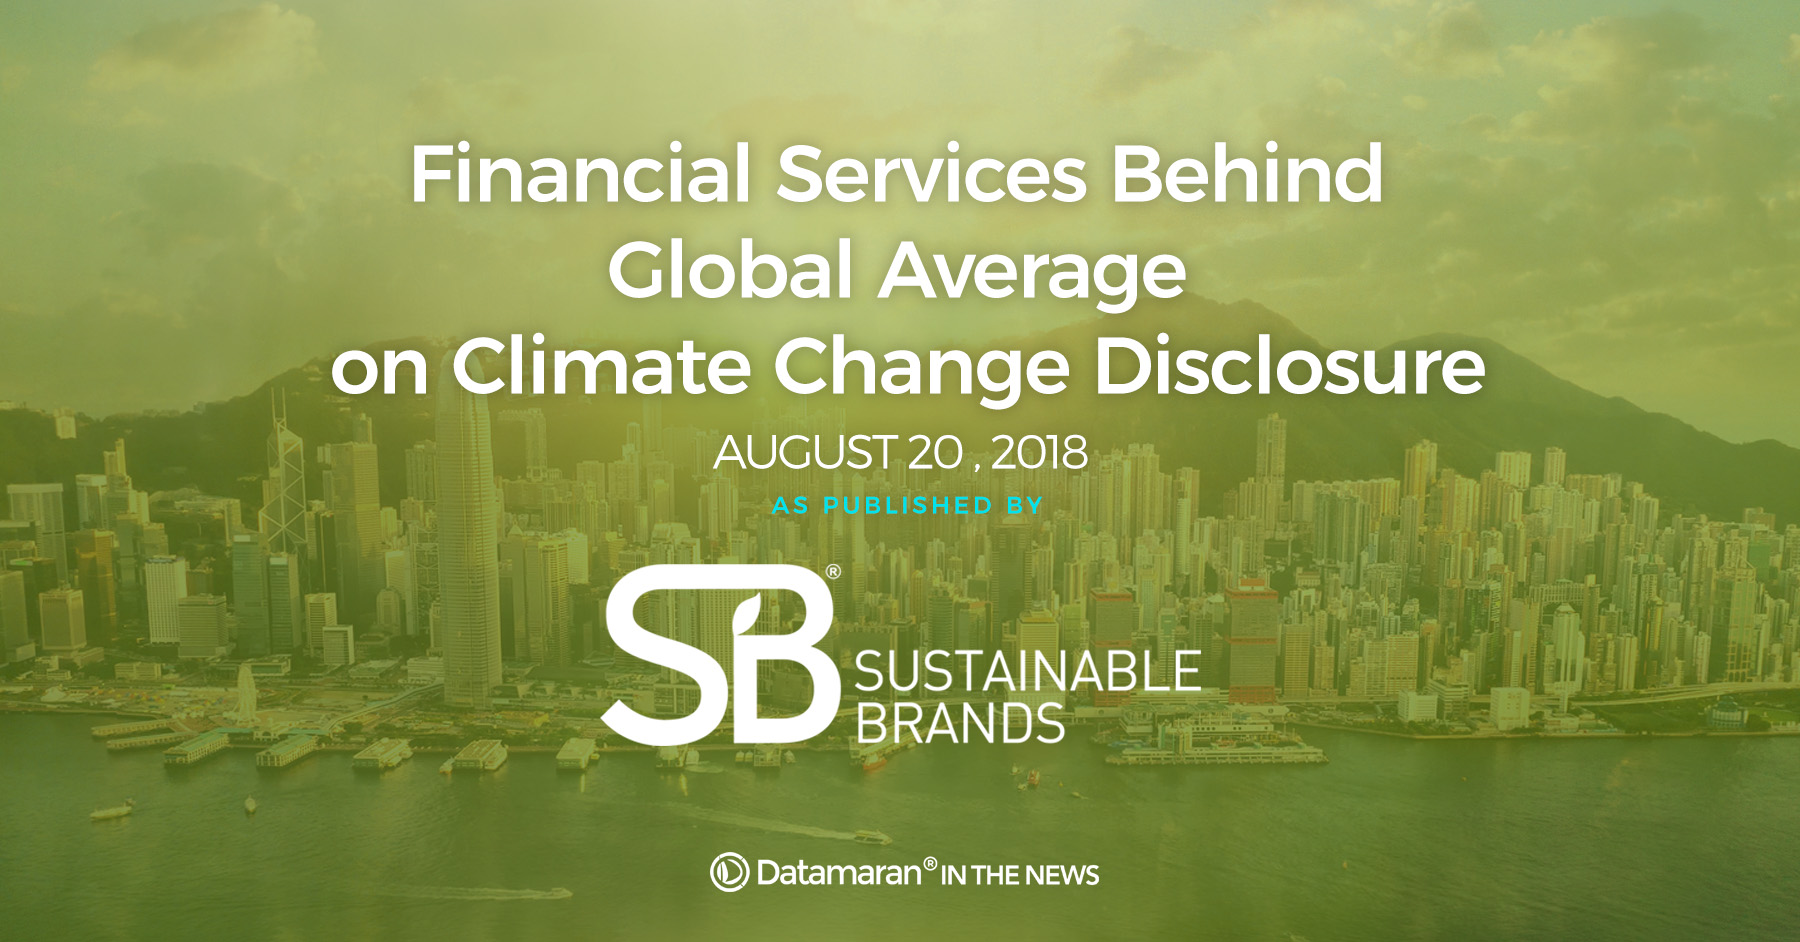 Sustainable brands: Financial services lag behind other sectors on climate change disclosure